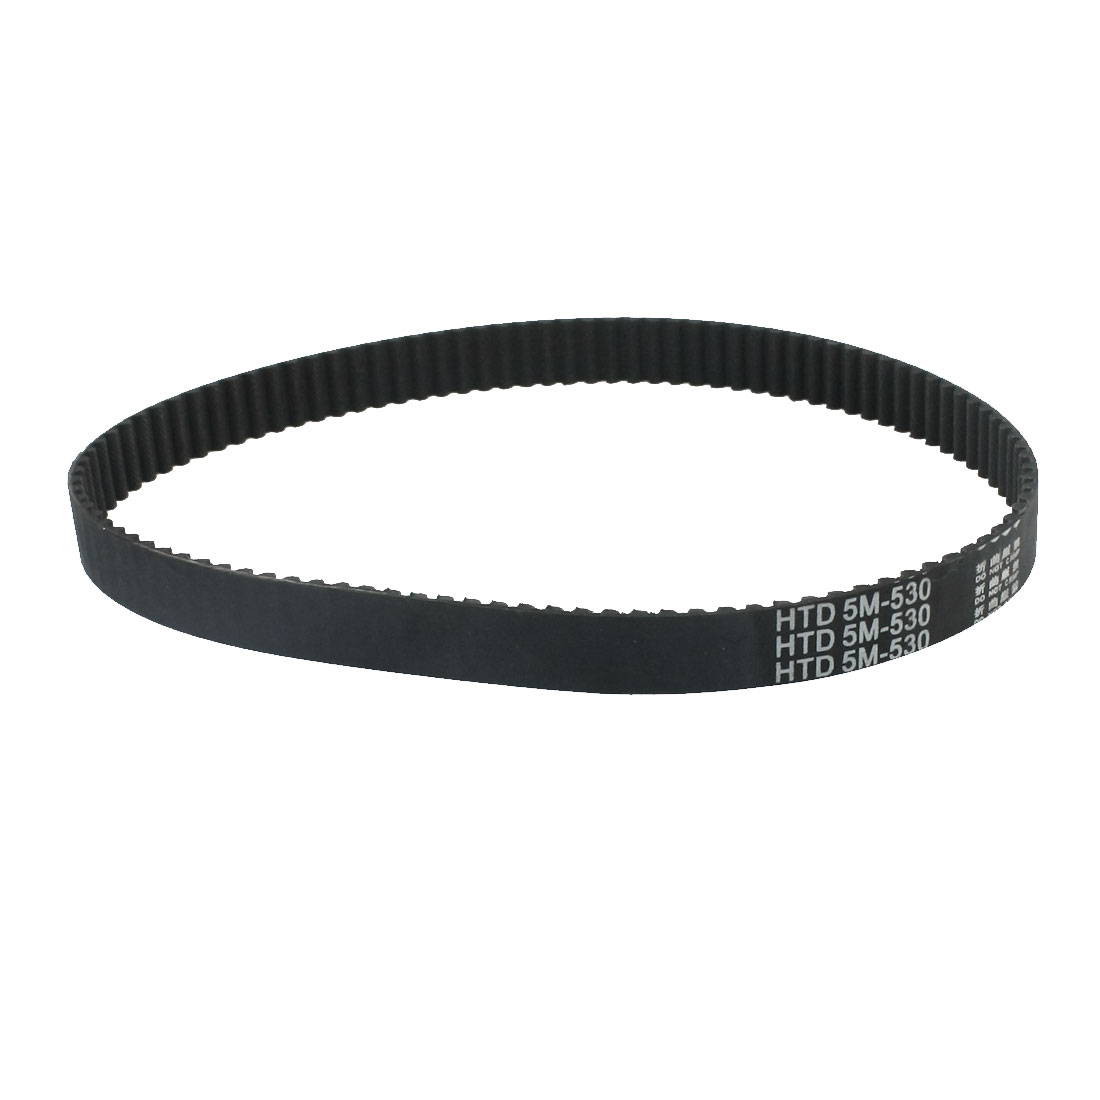 HTD 5M-530 Speed Control 106 Teeth 5mm Pitch 20mm Width Timing Belt